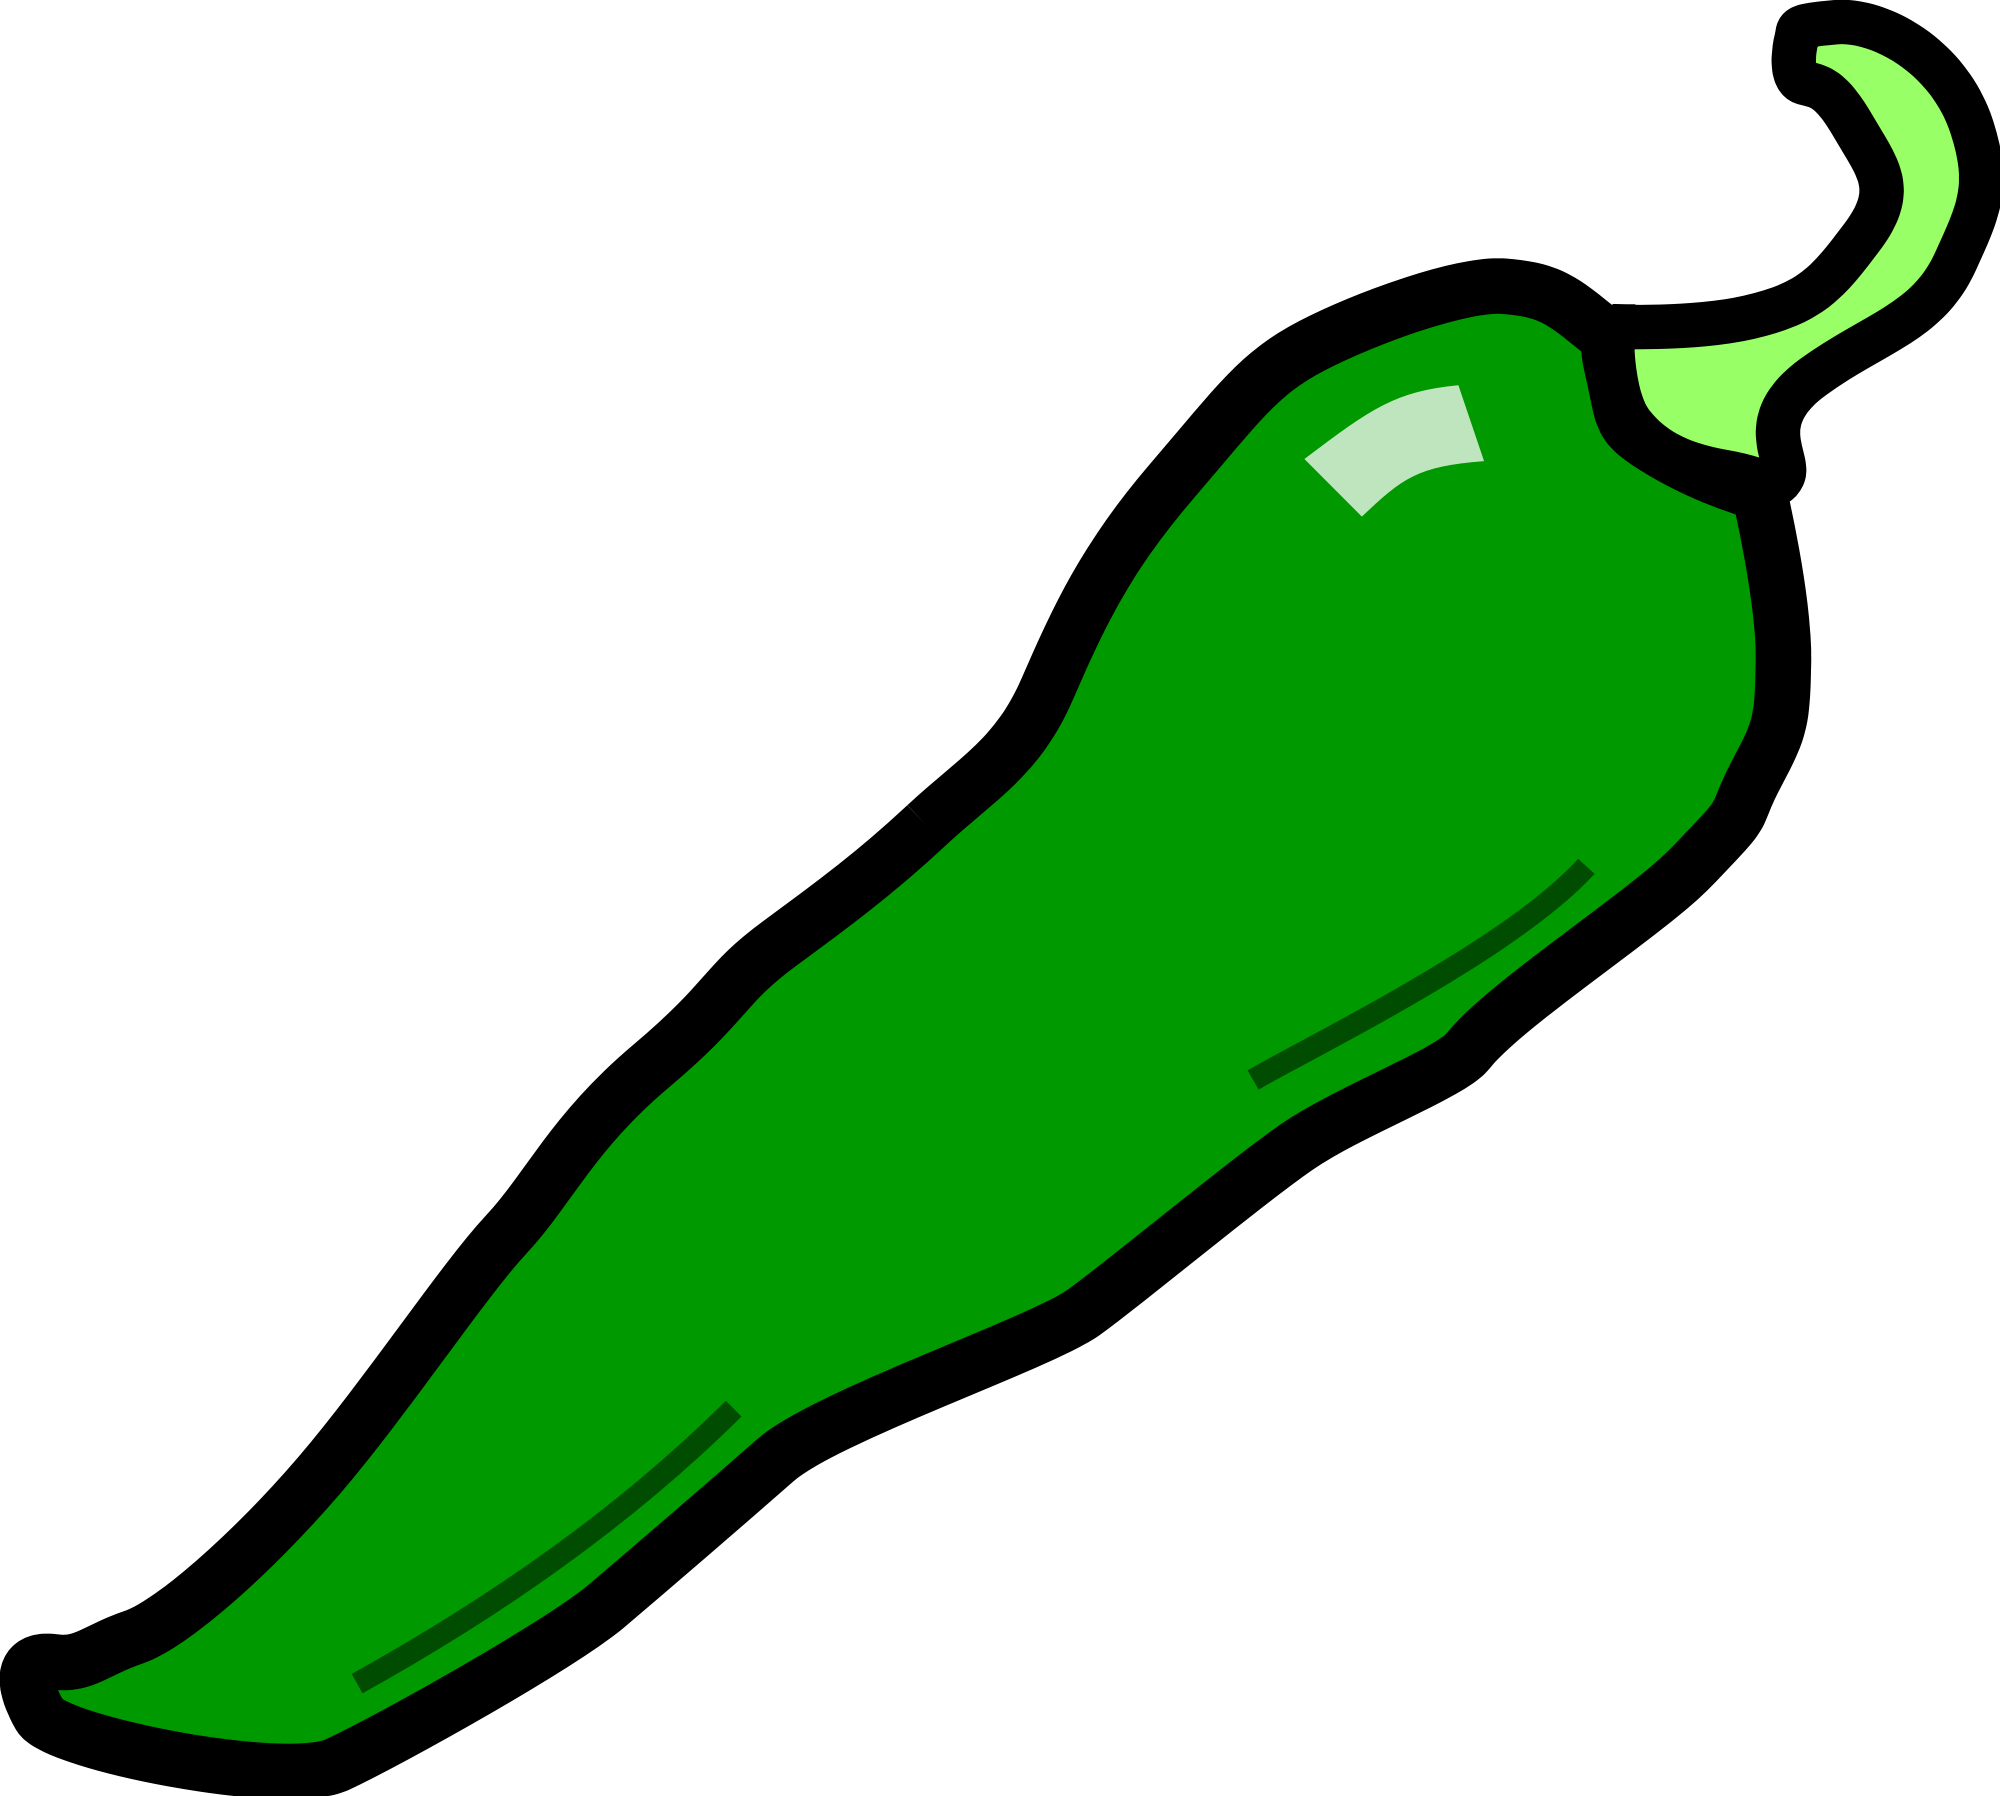 Jalapeno pepper clipart free graphic transparent Free Jalapeno PNG Transparent Jalapeno.PNG Images. | PlusPNG graphic transparent